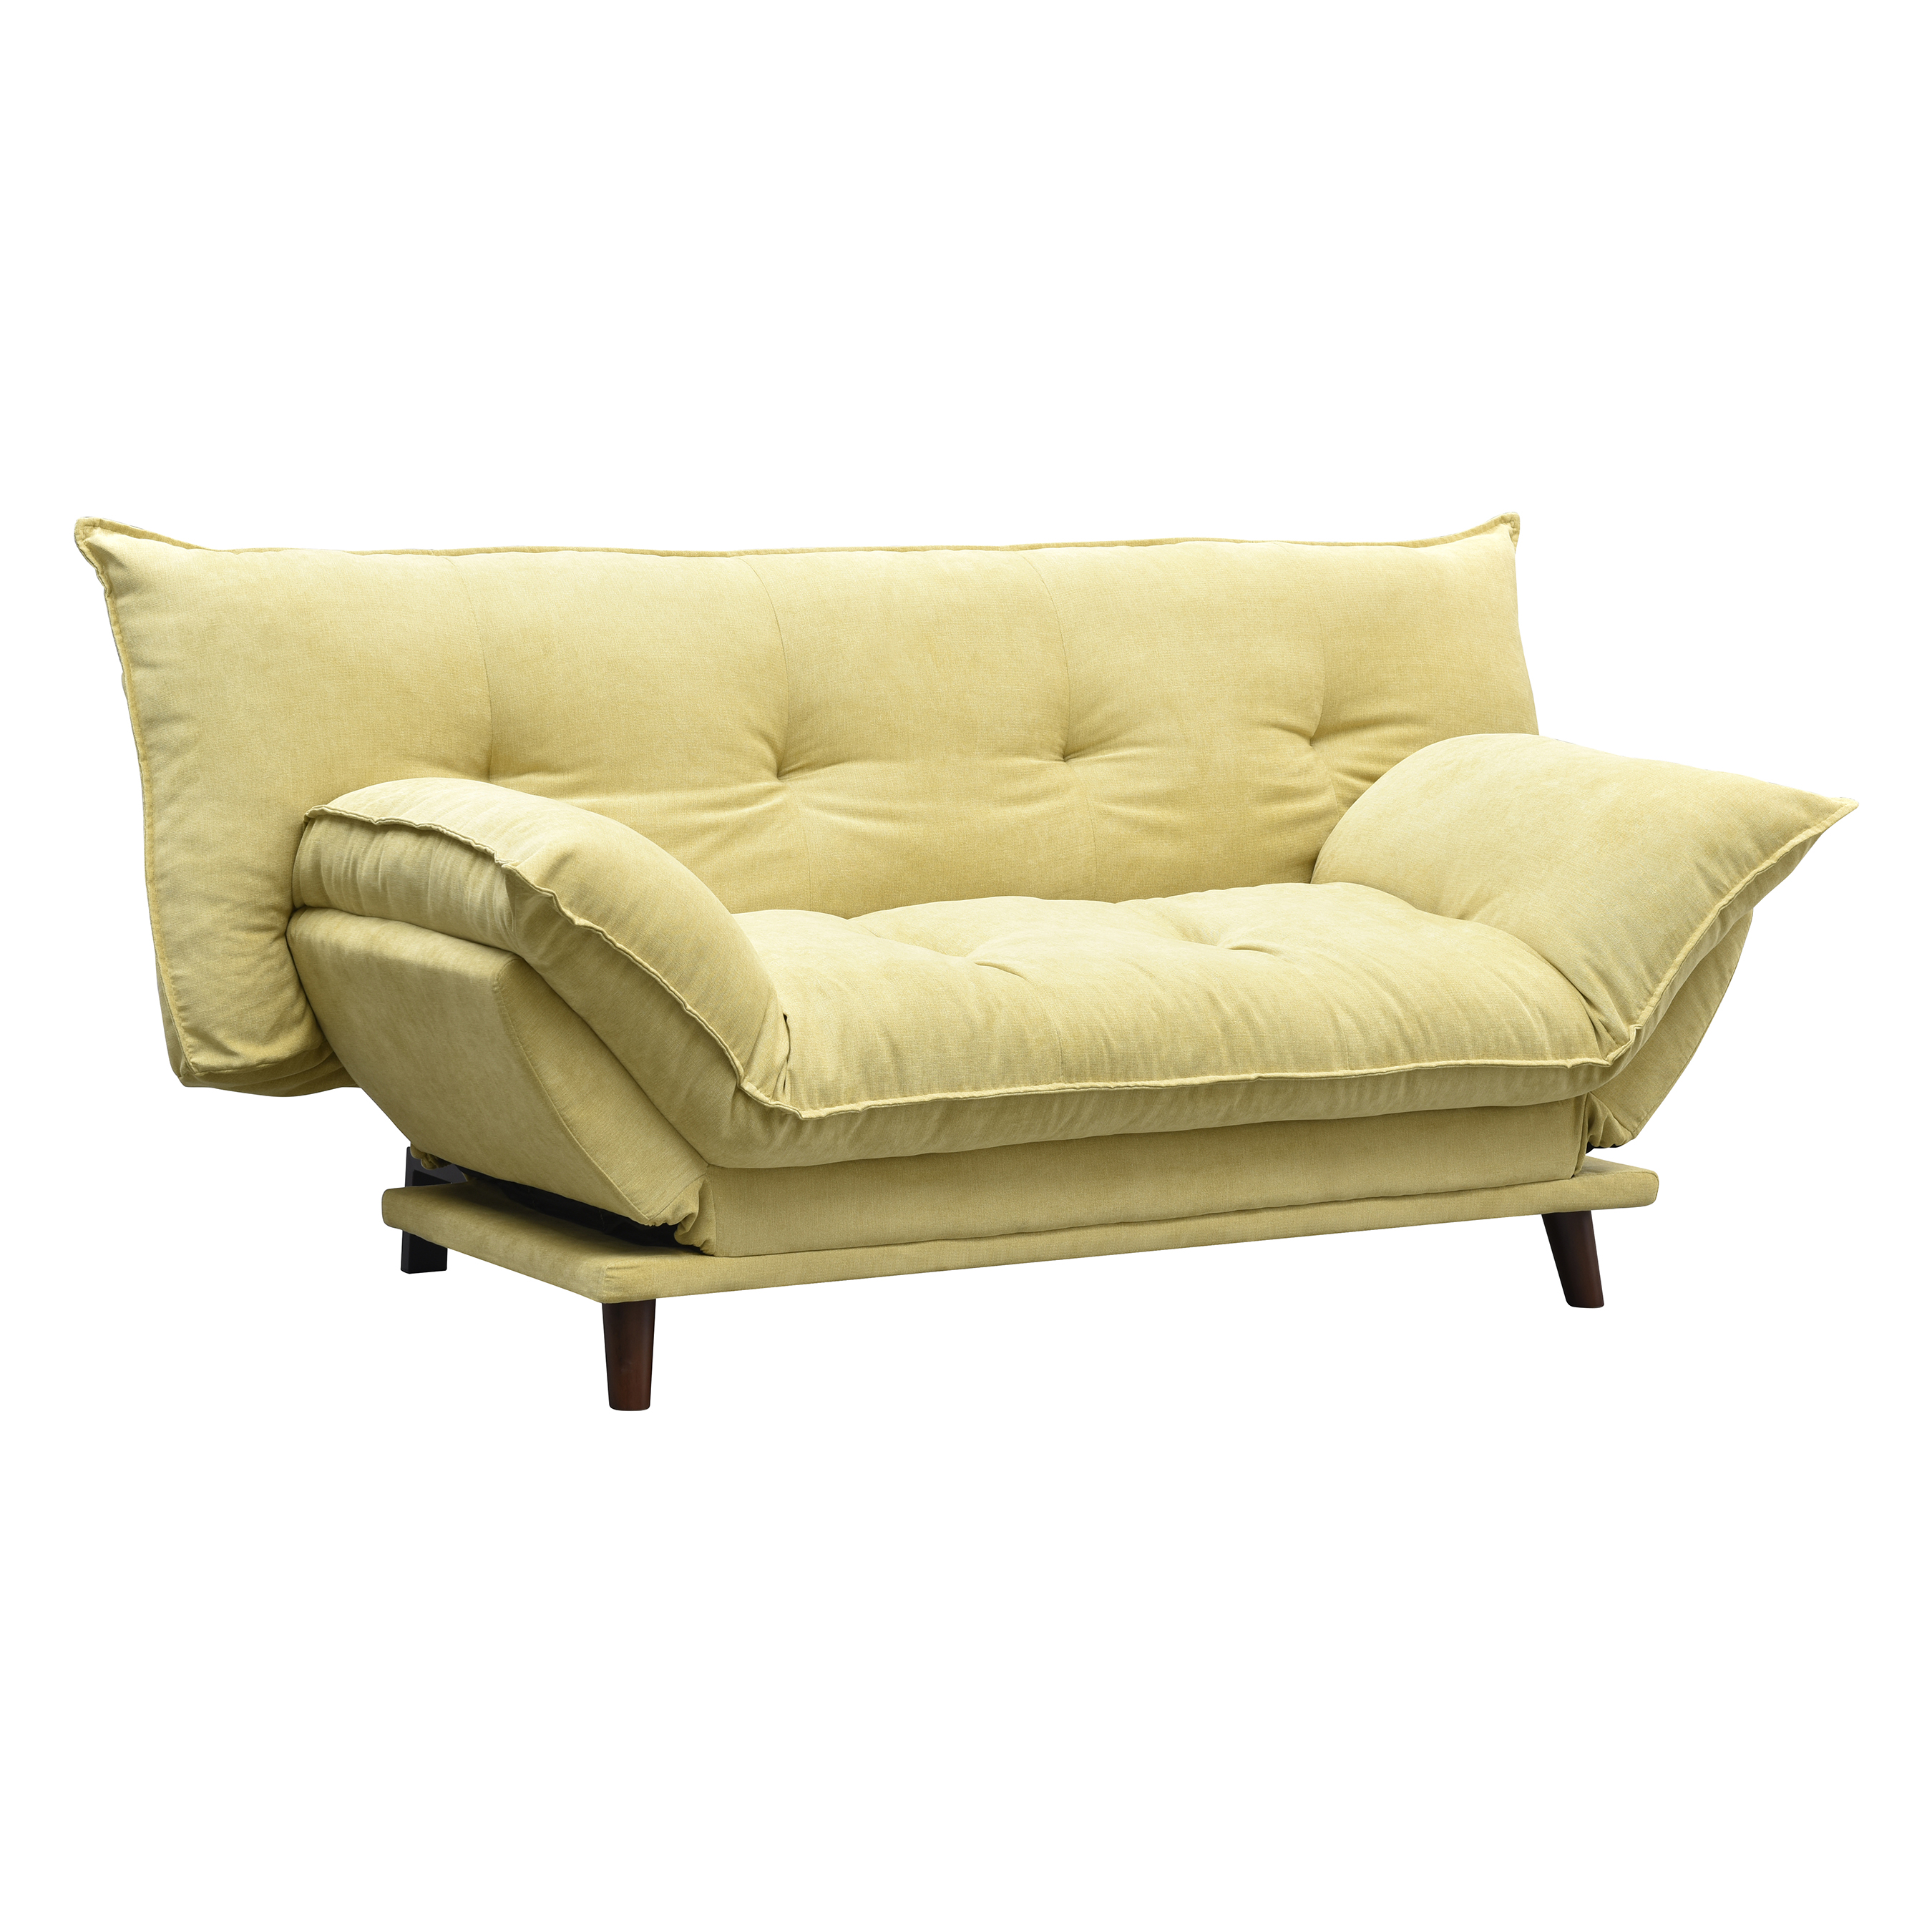 Pleasant Talleen Sofa Bed Euro Style Onthecornerstone Fun Painted Chair Ideas Images Onthecornerstoneorg